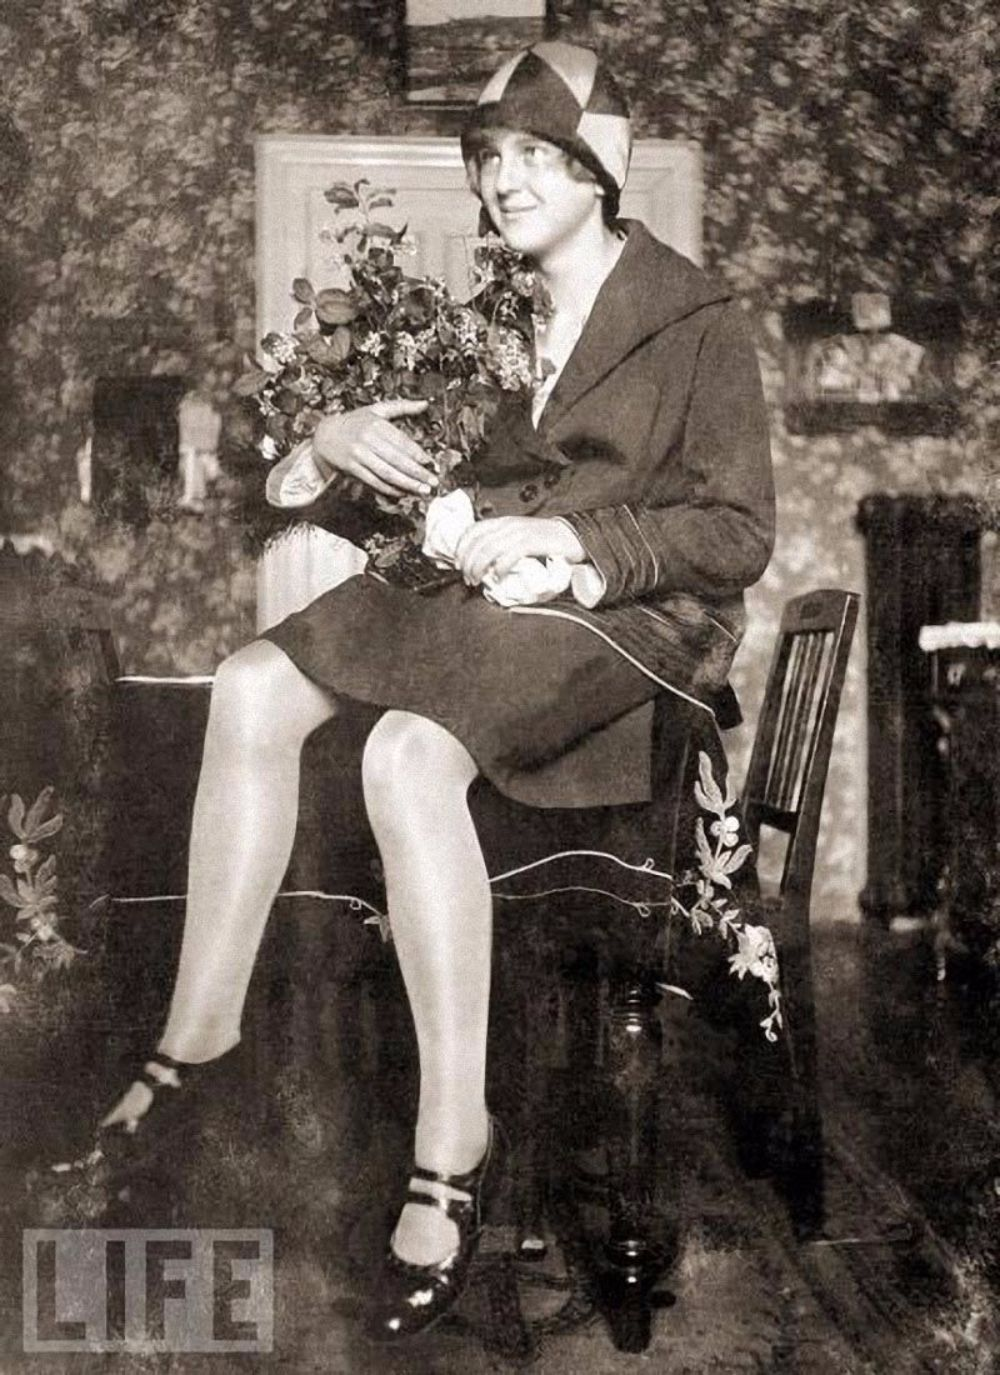 Eva braun 39 s life in pictures 20 rarely seen photos of for Living naked at home